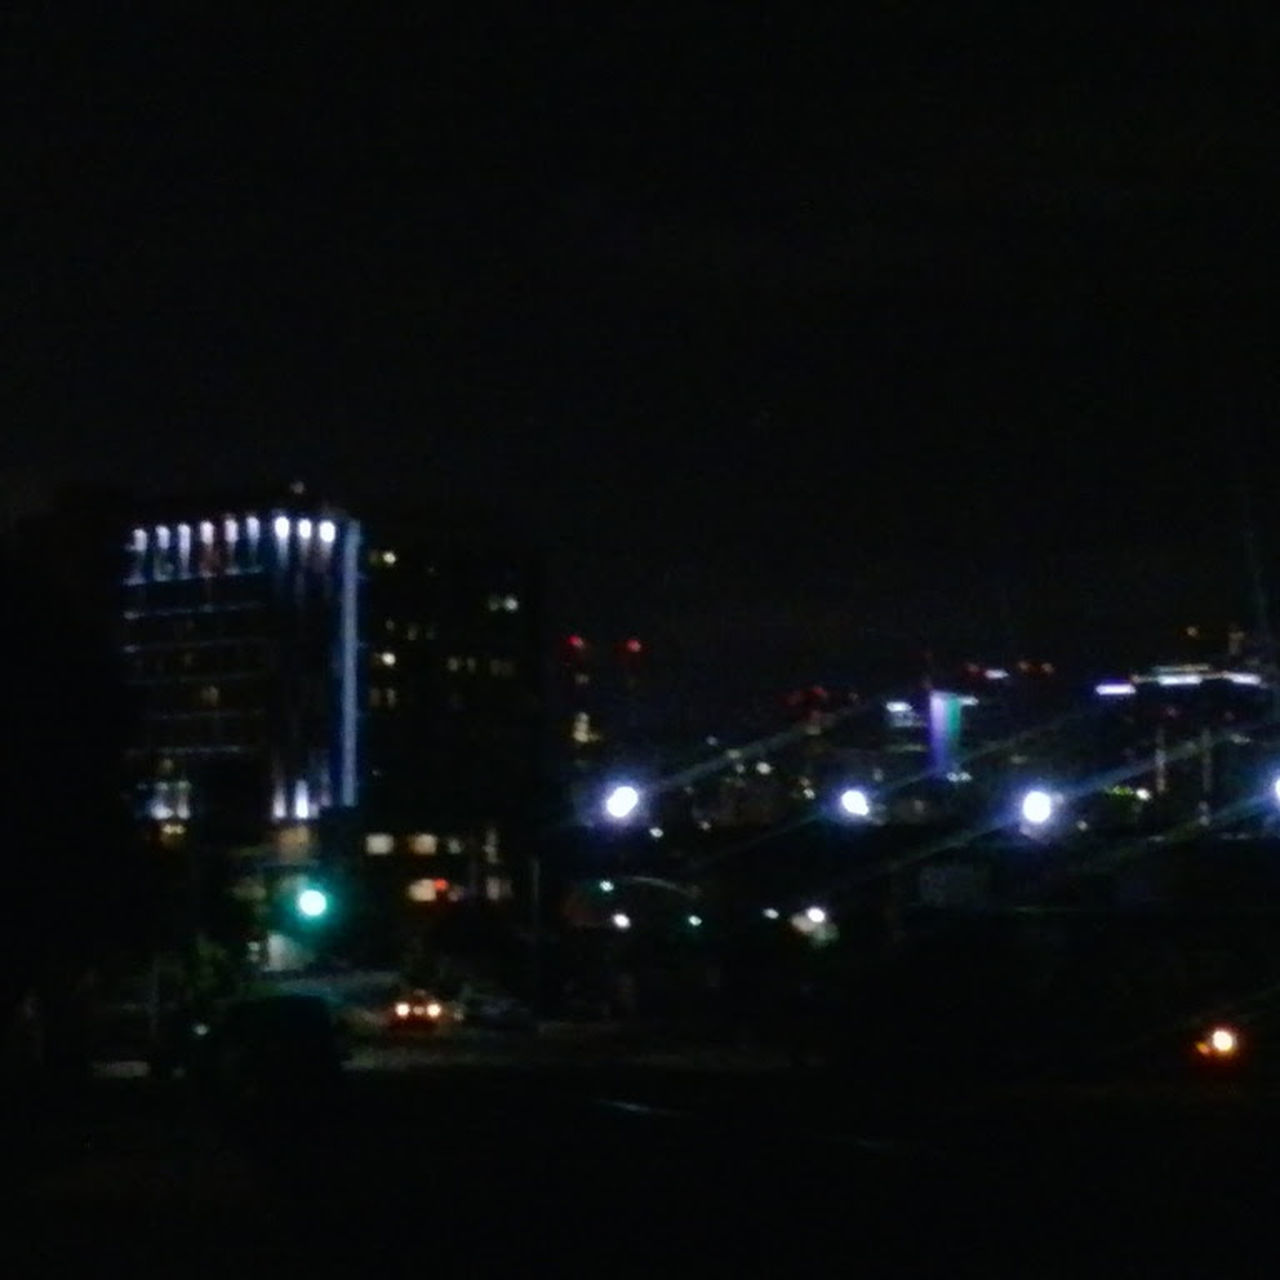 night, illuminated, city, building exterior, architecture, built structure, no people, cityscape, travel destinations, outdoors, skyscraper, modern, sky